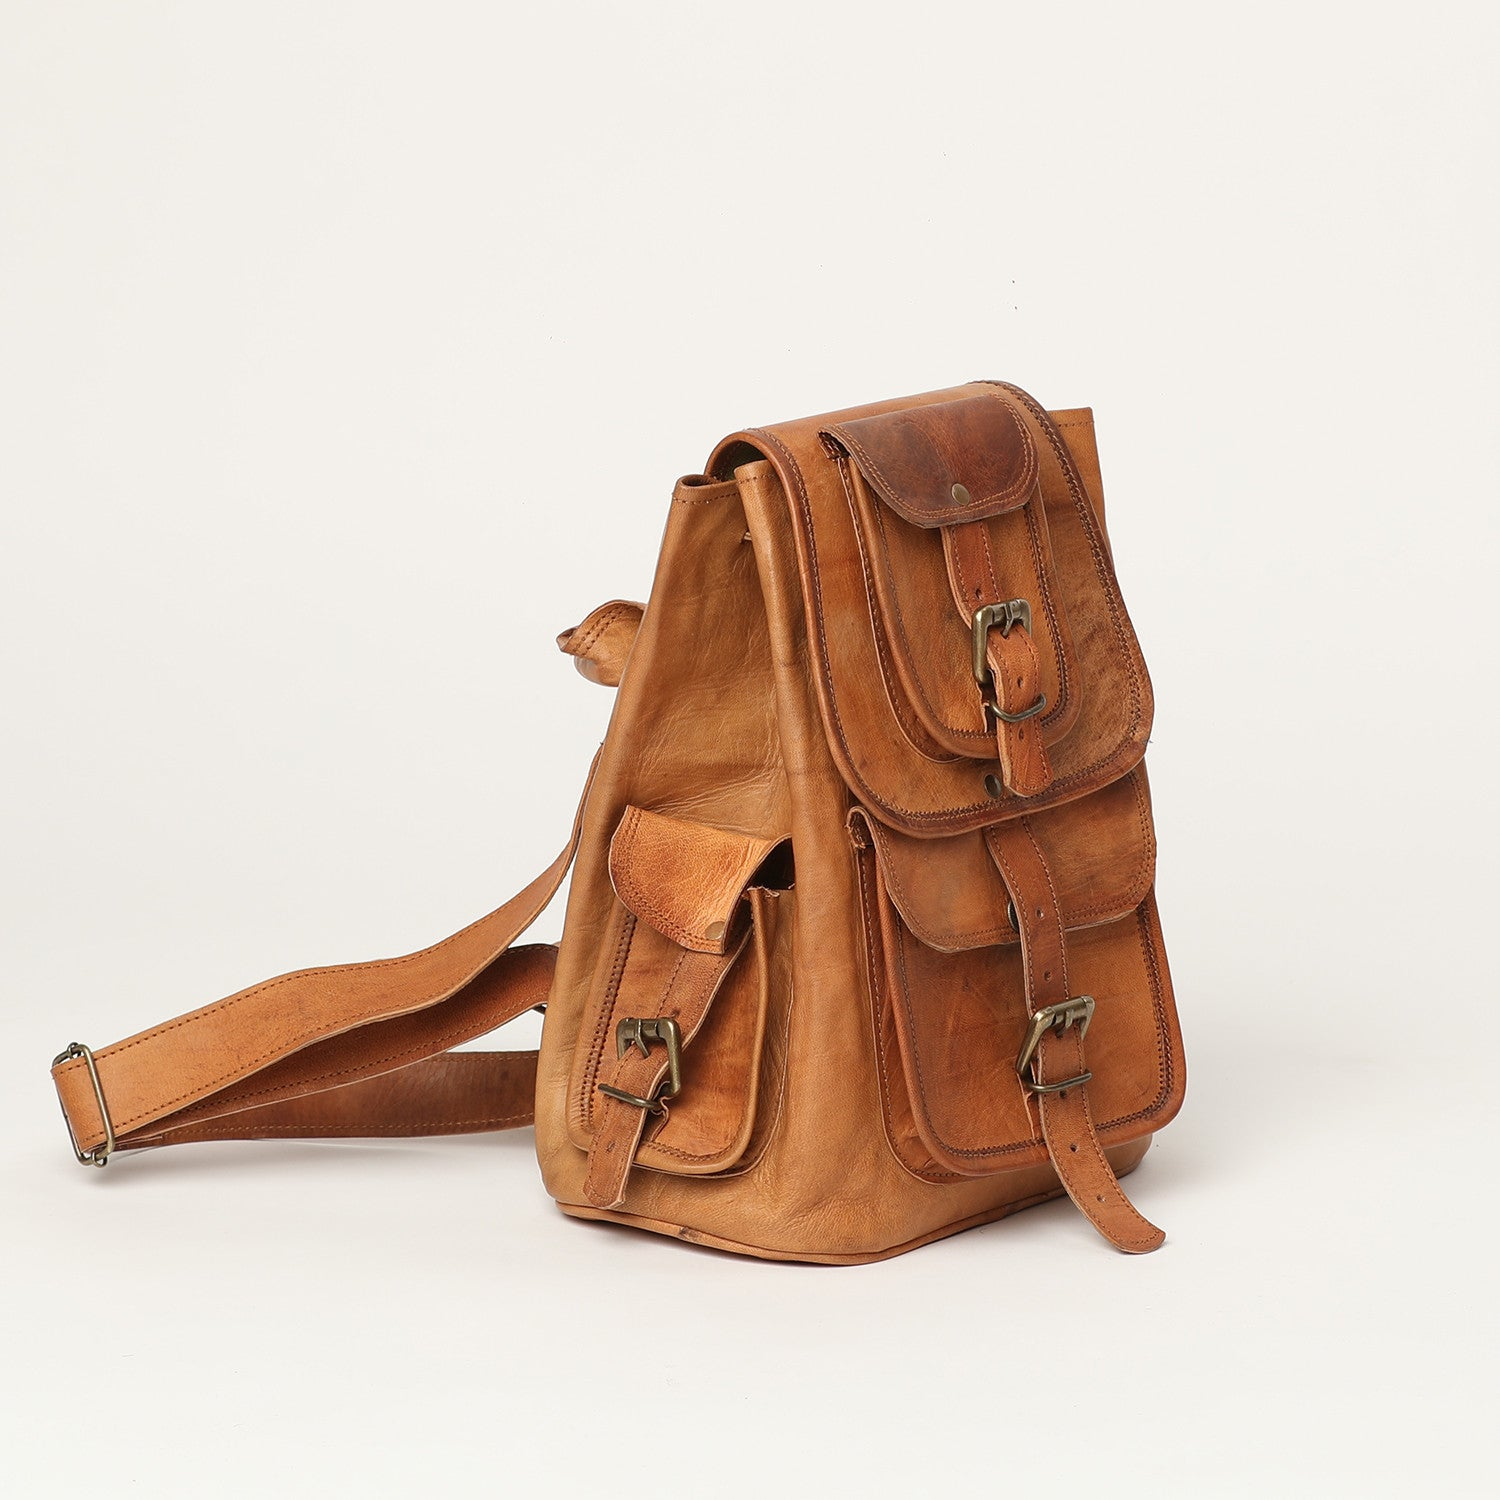 Backpack small - leather bags